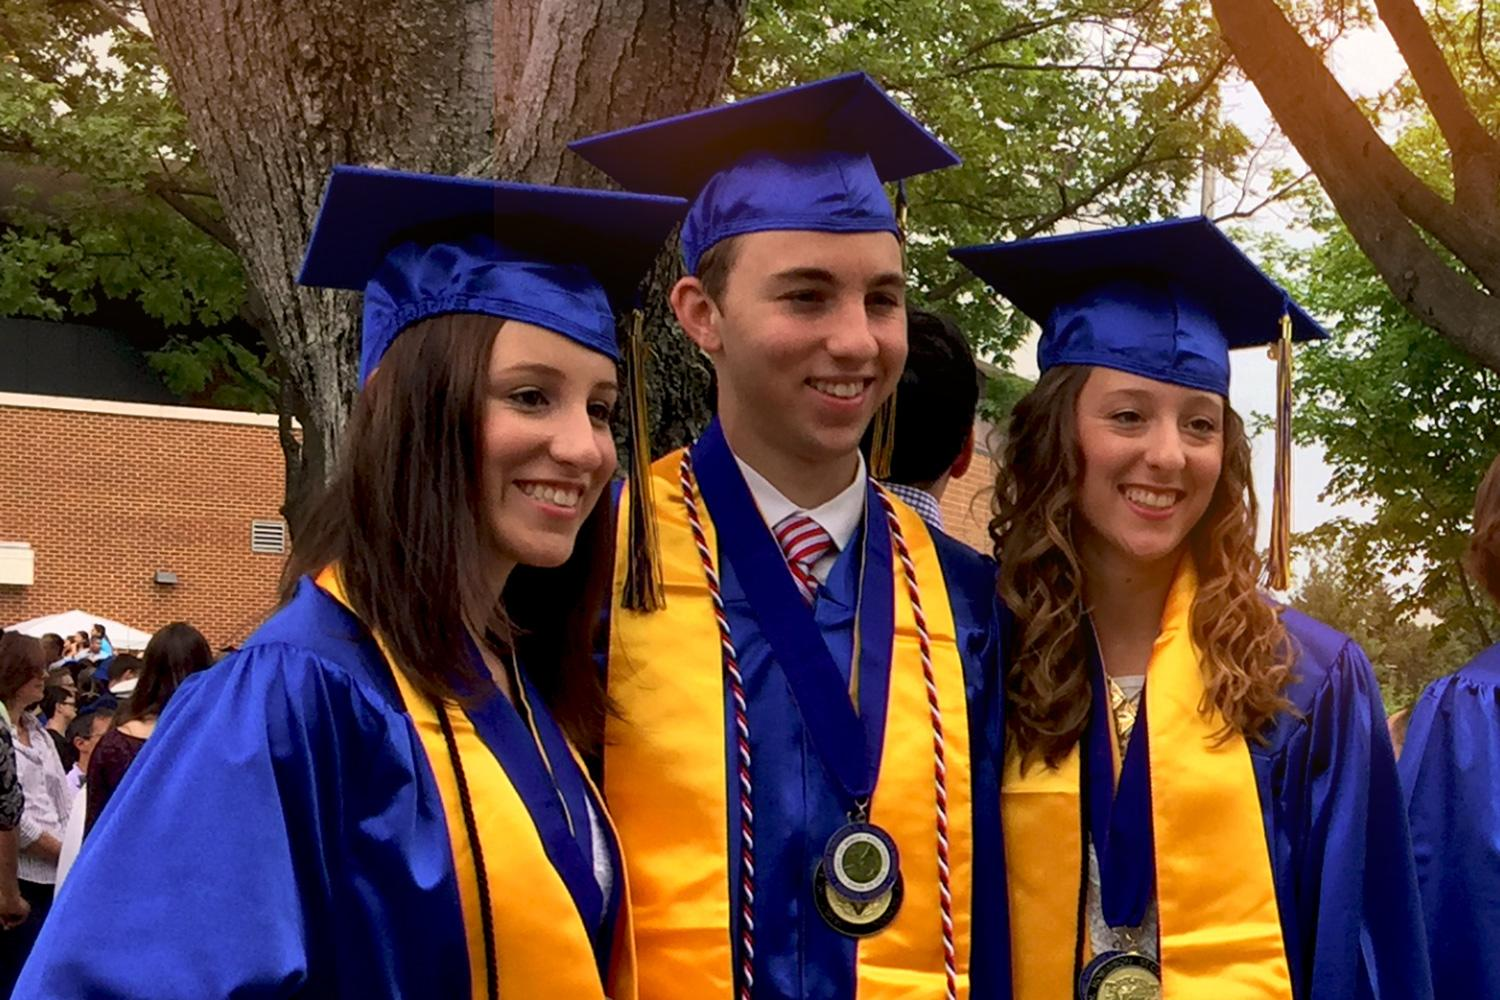 Upon high school graduation, triplets Nina, Noah and Noelle Zorzi all chose to attend the University of Virginia in the fall of 2016. (Submitted photo)